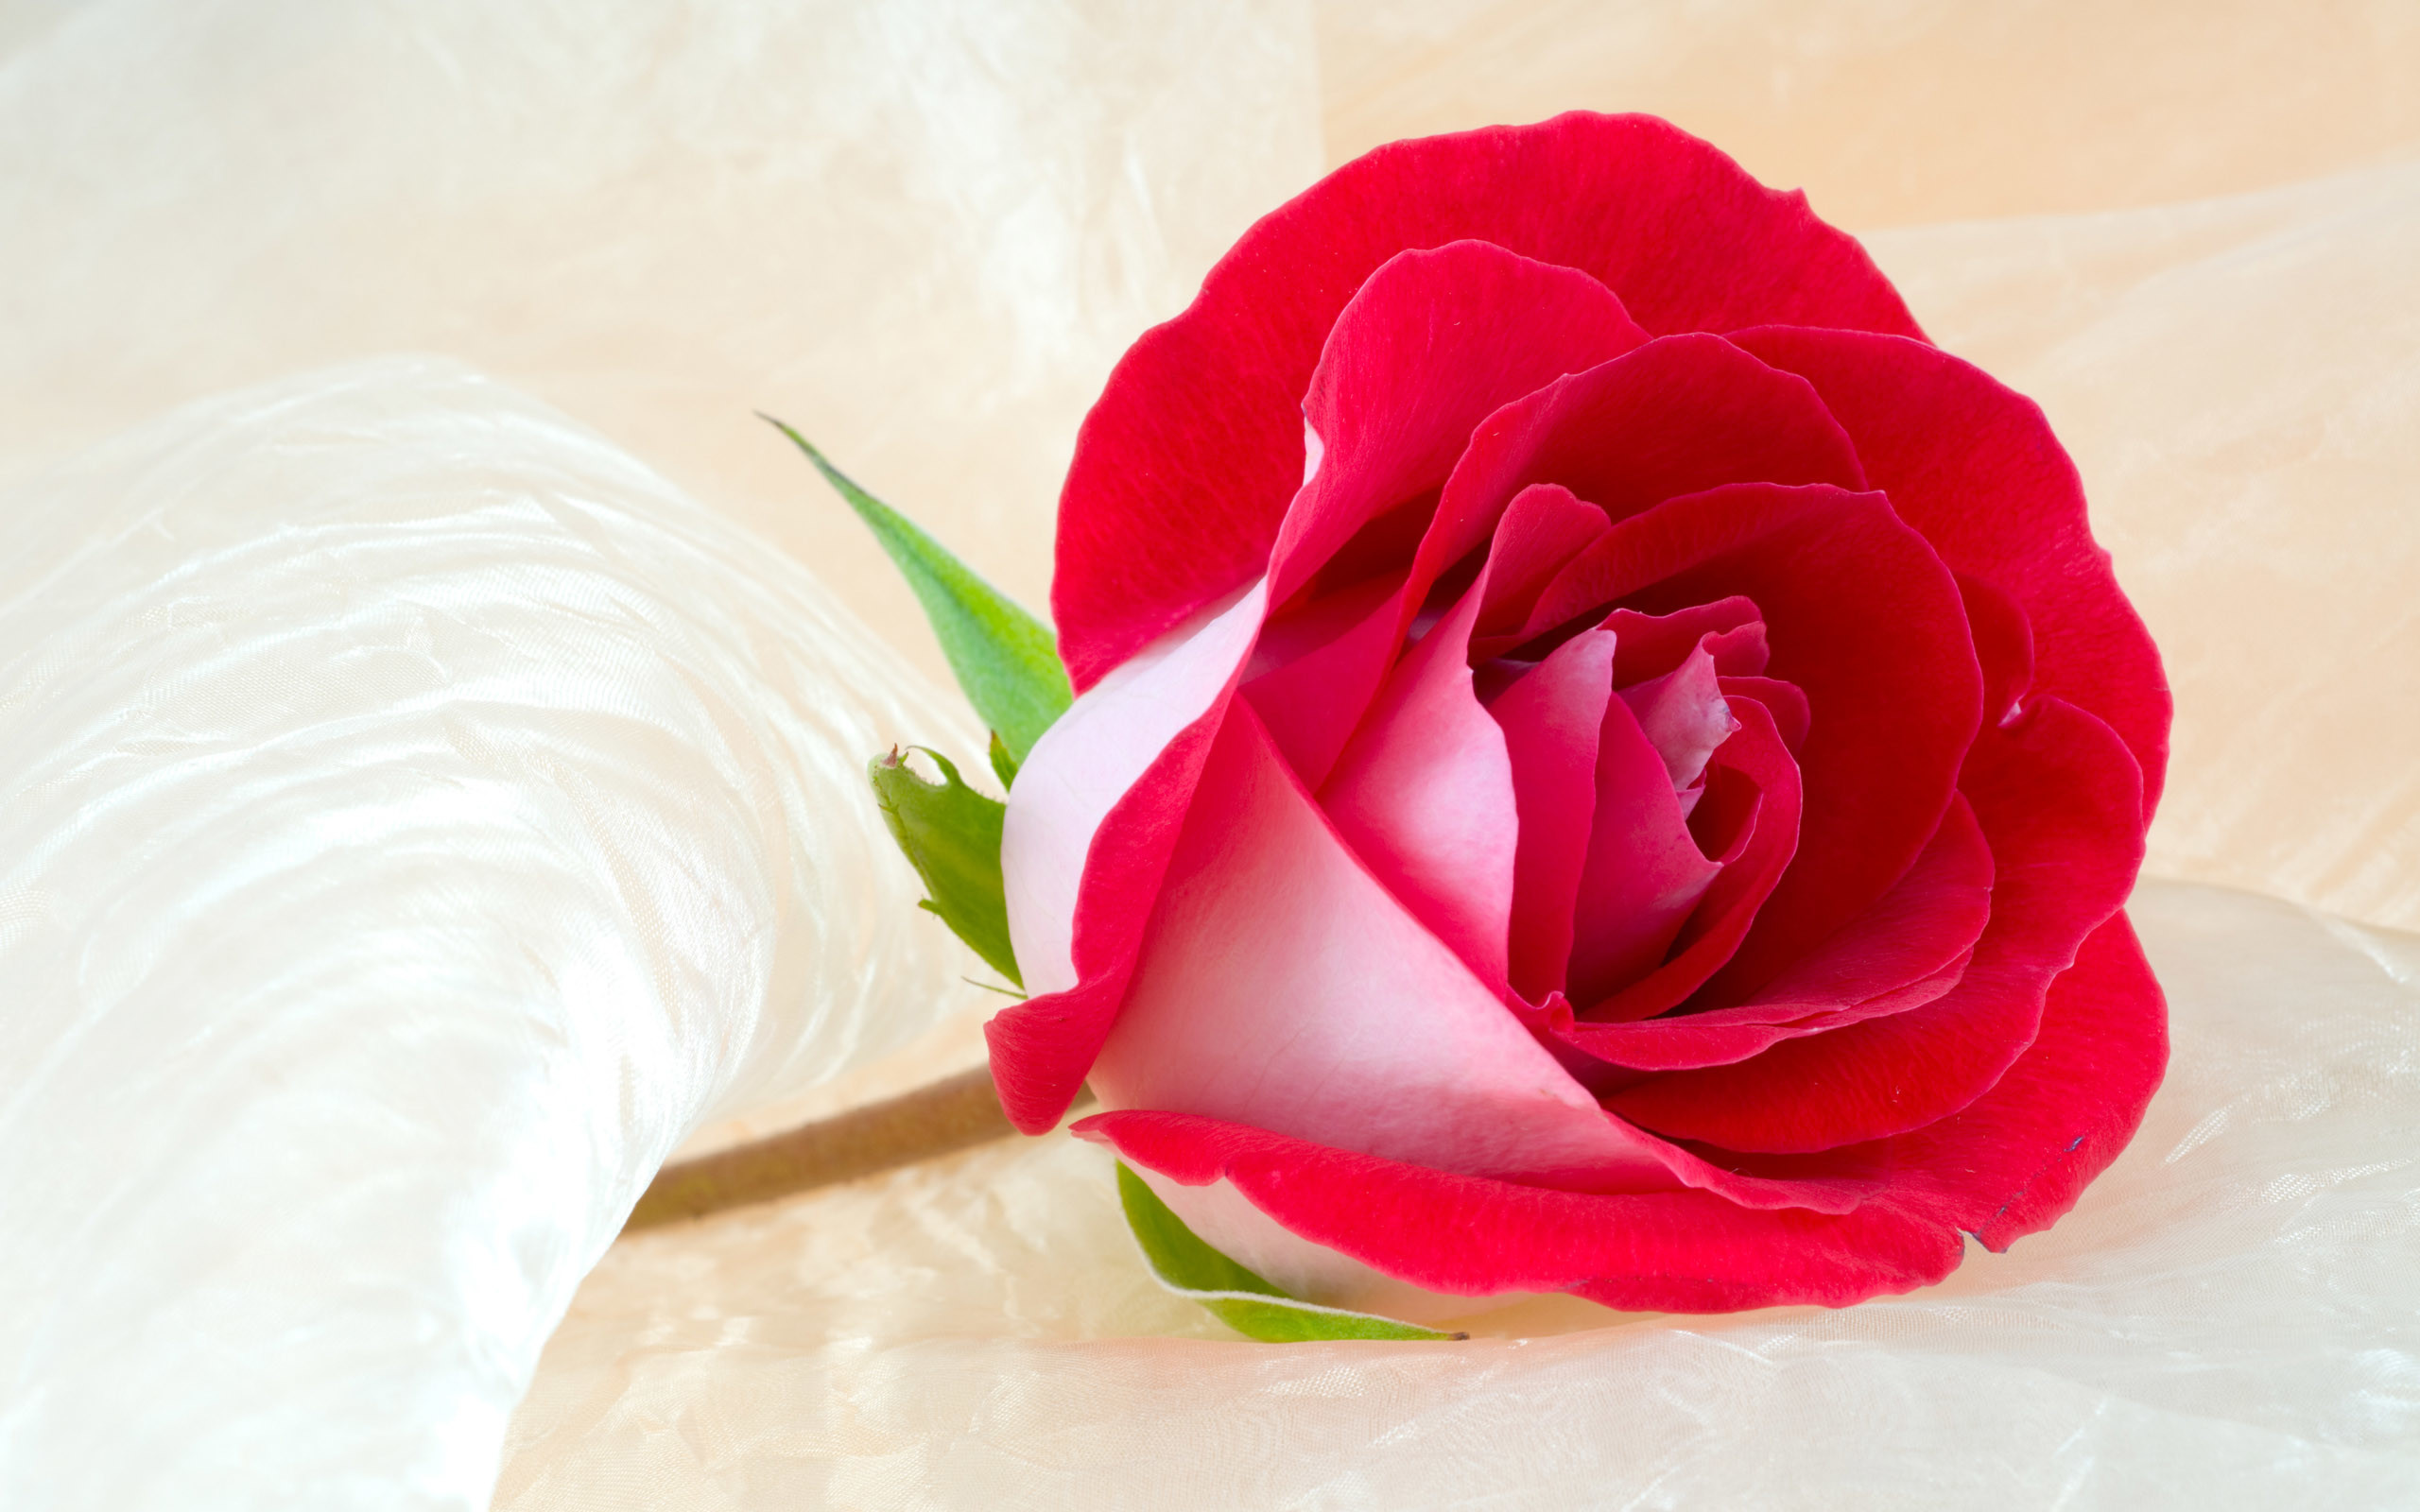 Res: 2560x1600, rose wallpaper free photos: Beautiful Rose Flower Wallpaper